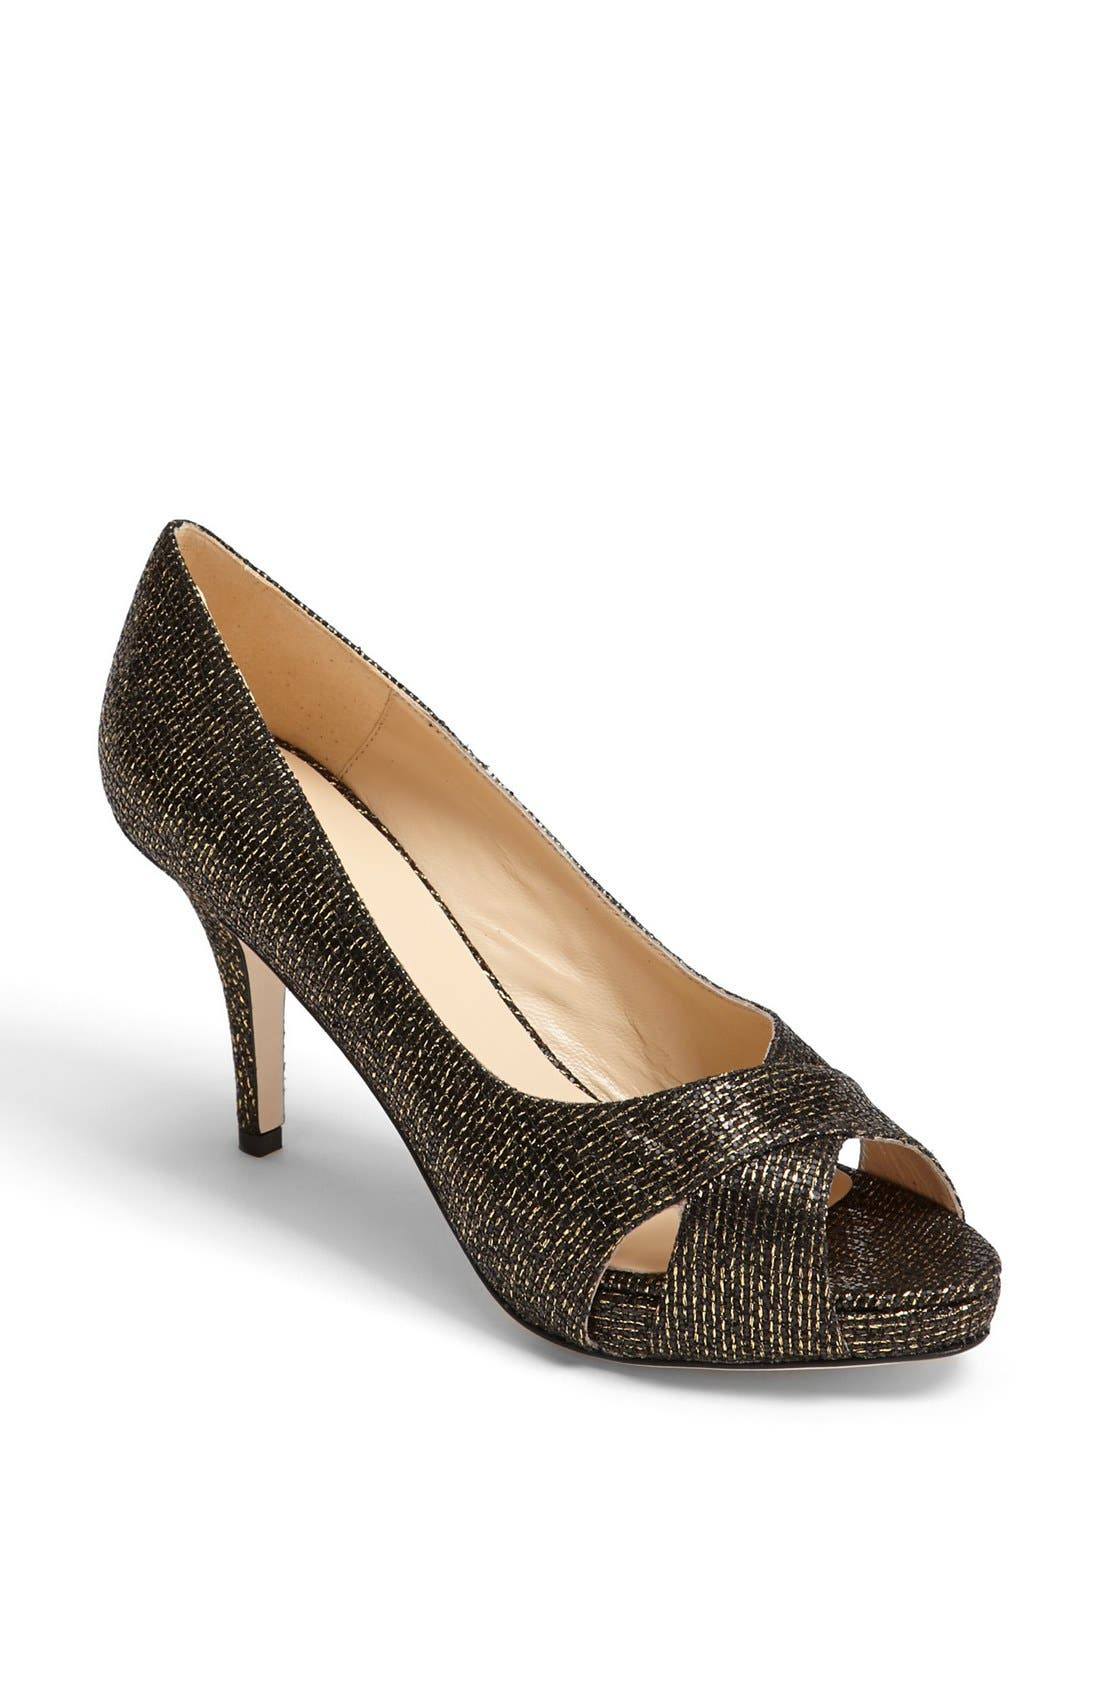 Alternate Image 1 Selected - kate spade new york 'billie' pump